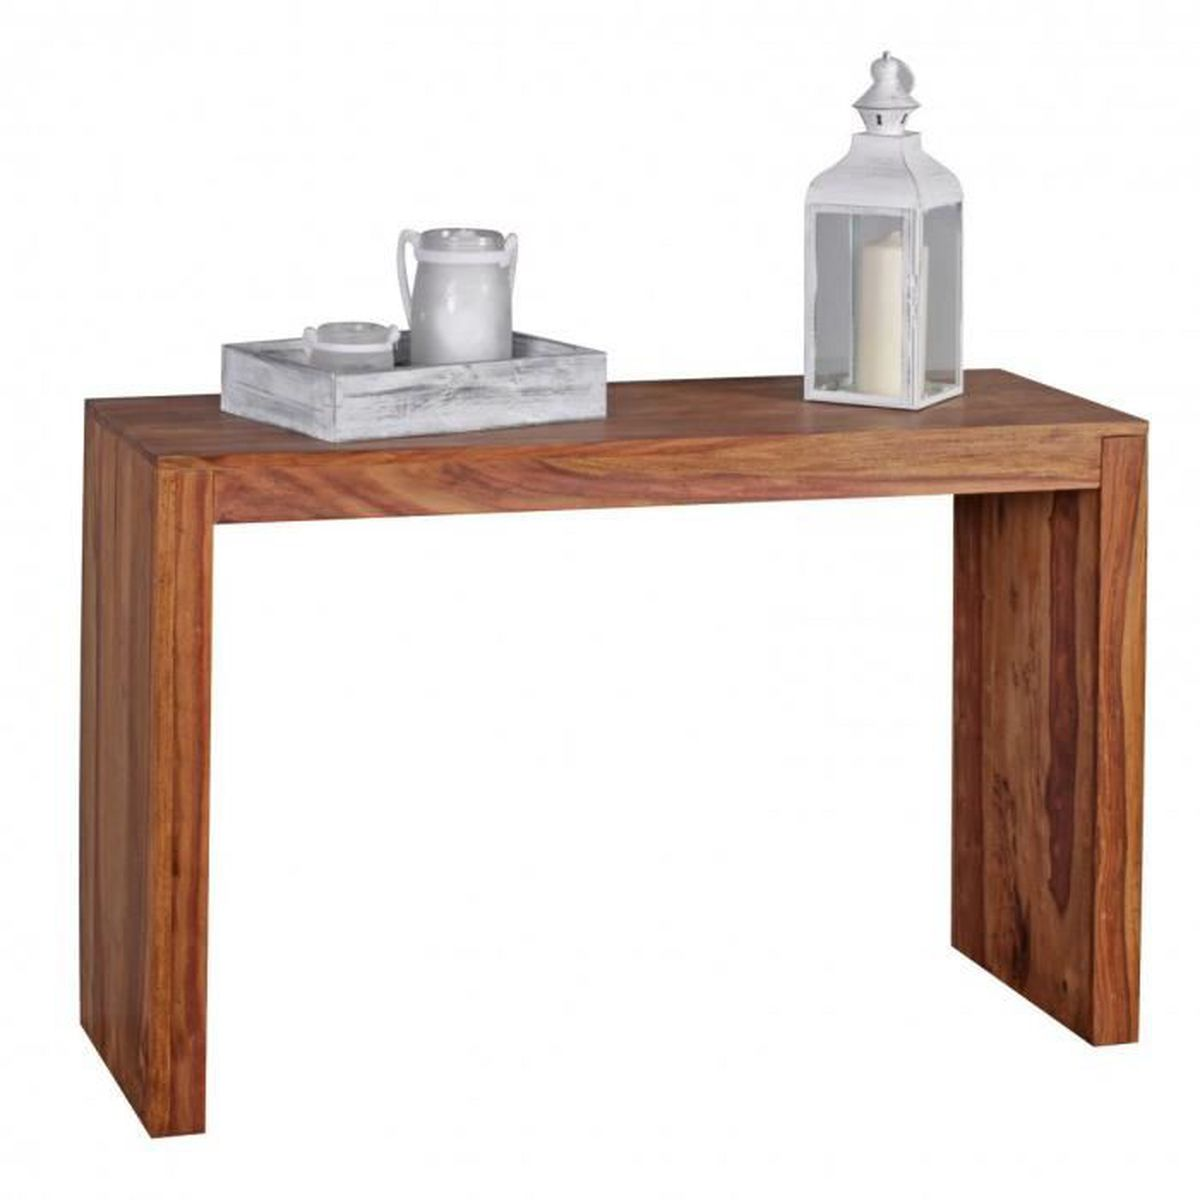 Table console solide en bois sheesham console bureau 115 x for Bureau 40 cm de profondeur